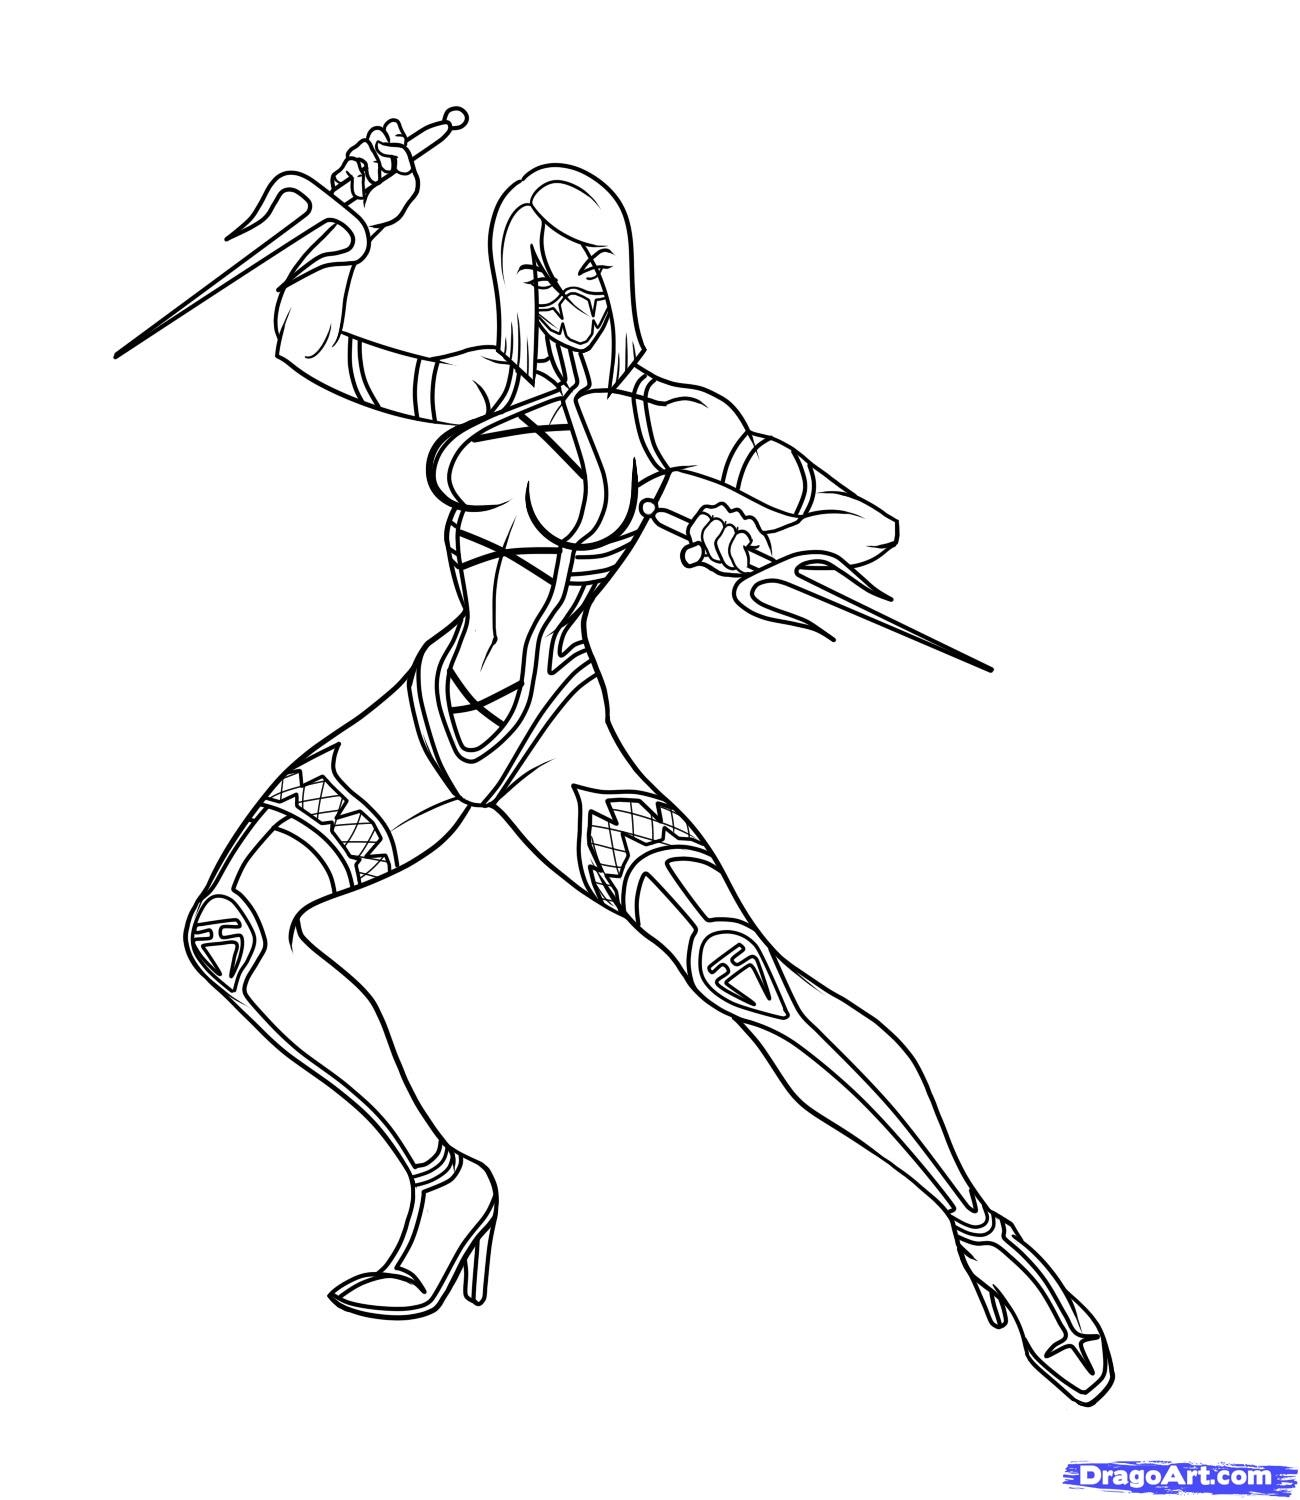 mortal kombat coloring pages - mortal kombat